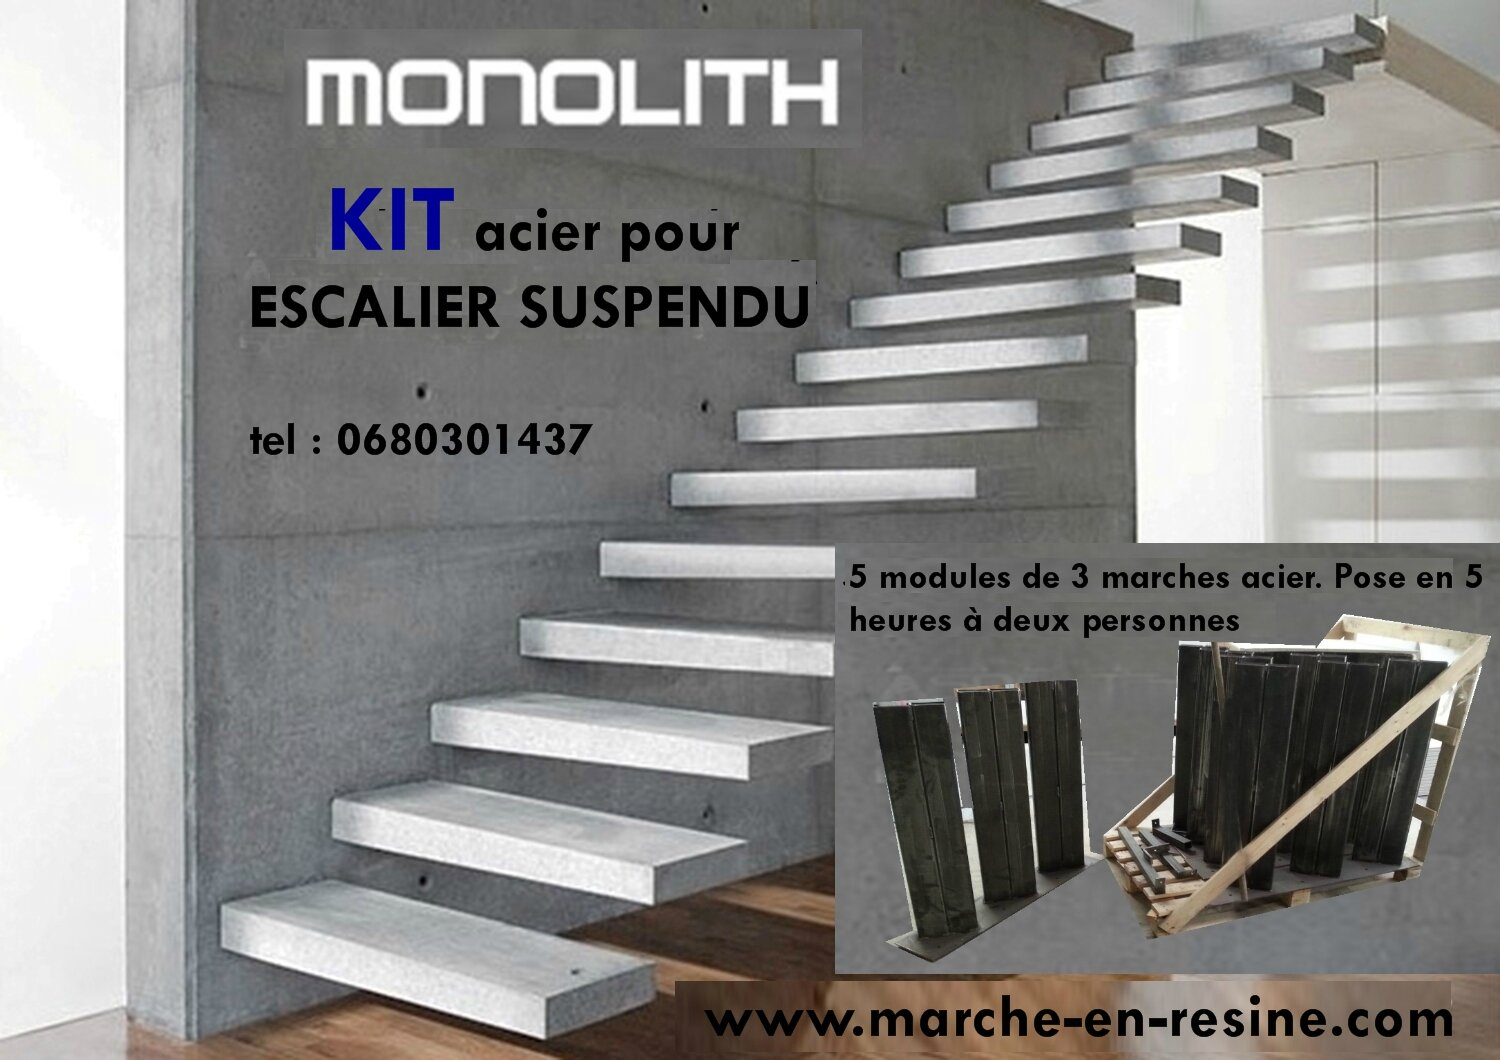 escalier suspendu quart tournant escalier suspendu marches suspendues marche caisson, escalier beton placage ,floating stair,escalier,floating stair,